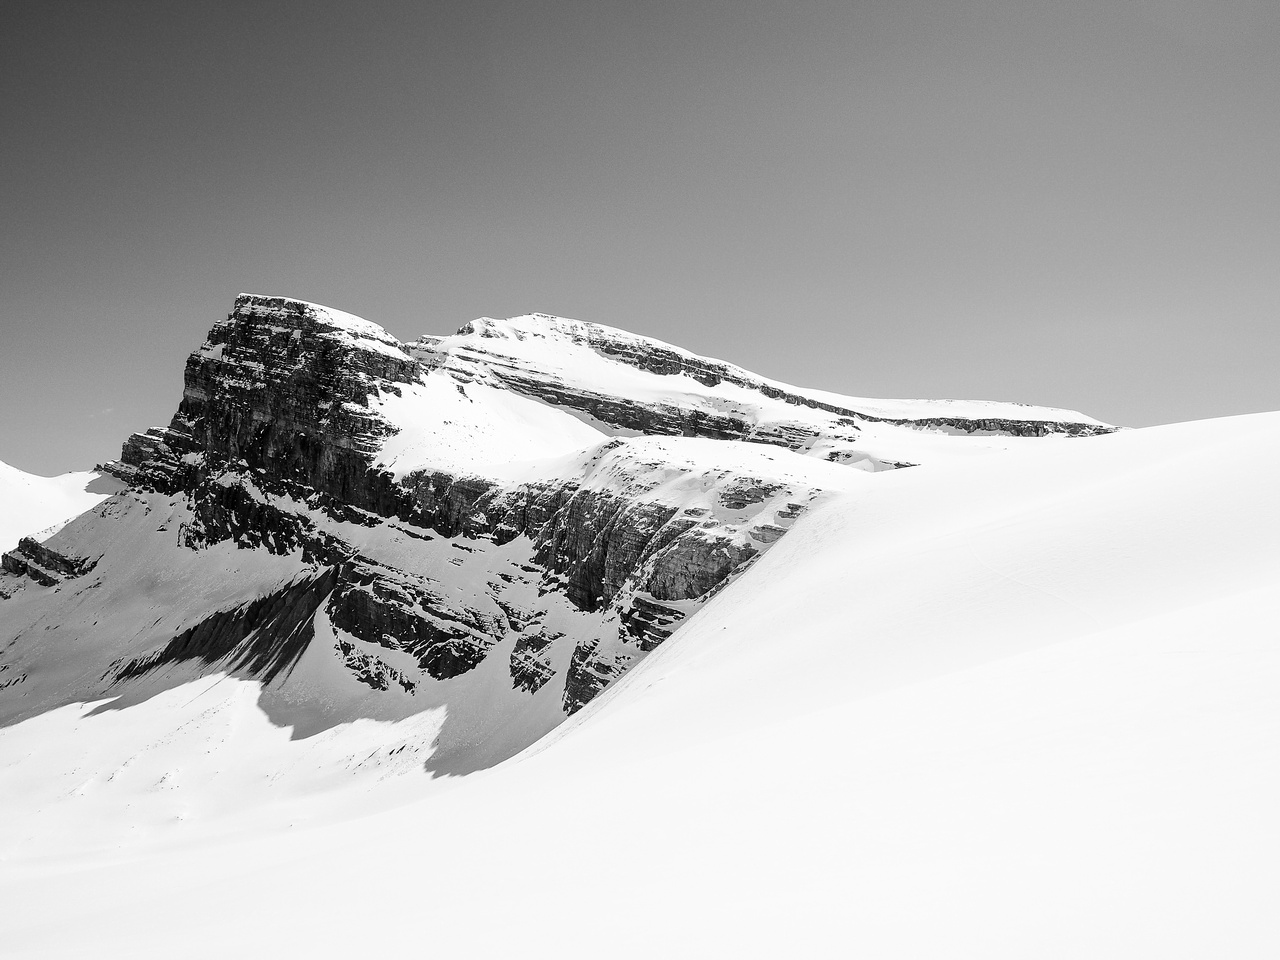 Skiing down the Peyto Glacier headwall.